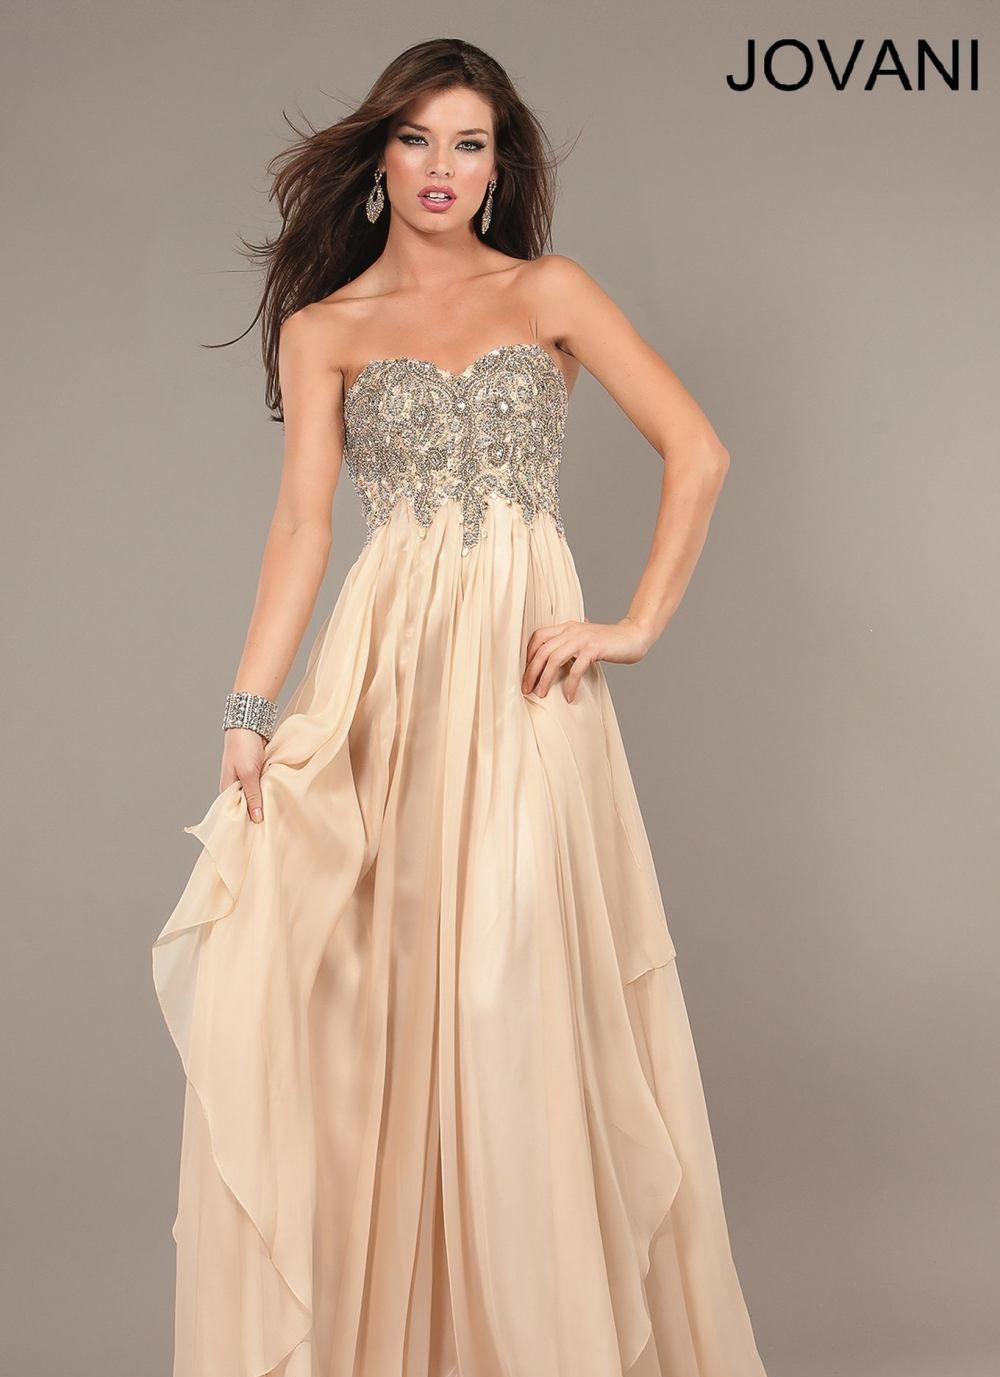 Sequined Empire Waist Gown by Jovani Prom | JustProm #prom @Jovani ...